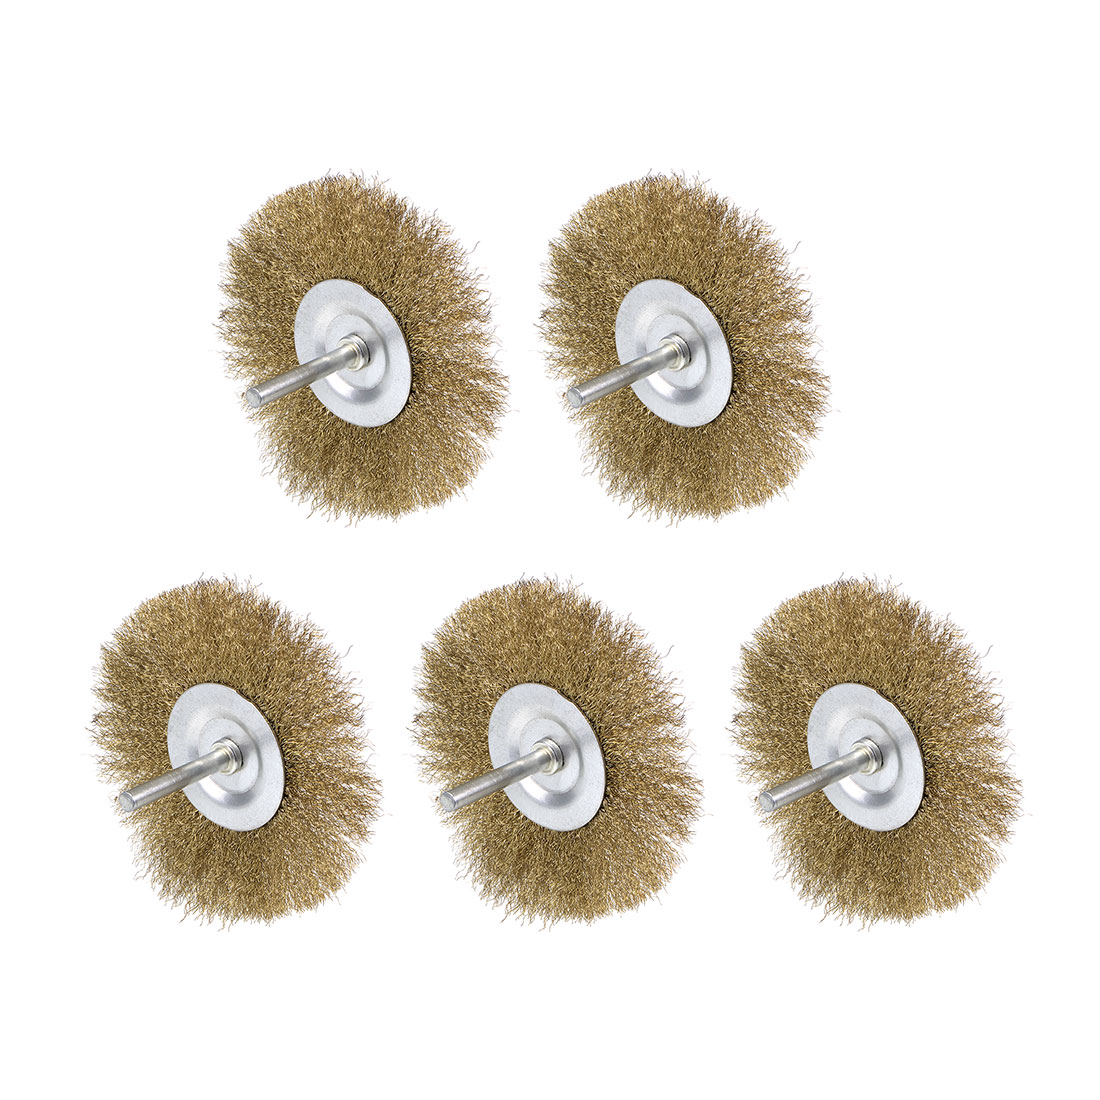 4-Inches Wire Wheel Brush Bench Brass Plated Crimped Steel 1/4-Inch Shank 5Pcs